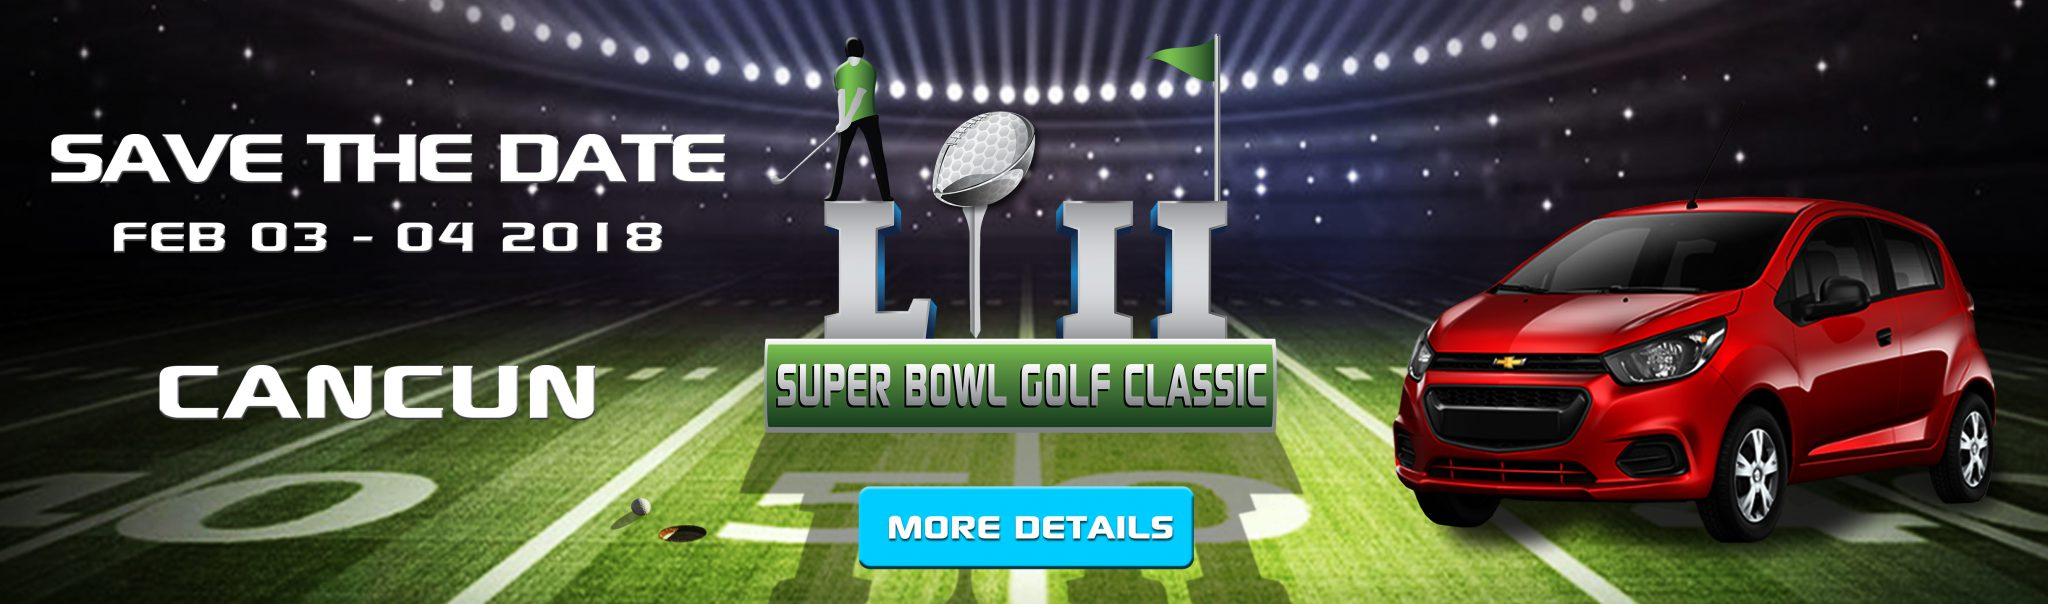 Super Bowl Golf Classic Cancun 2018